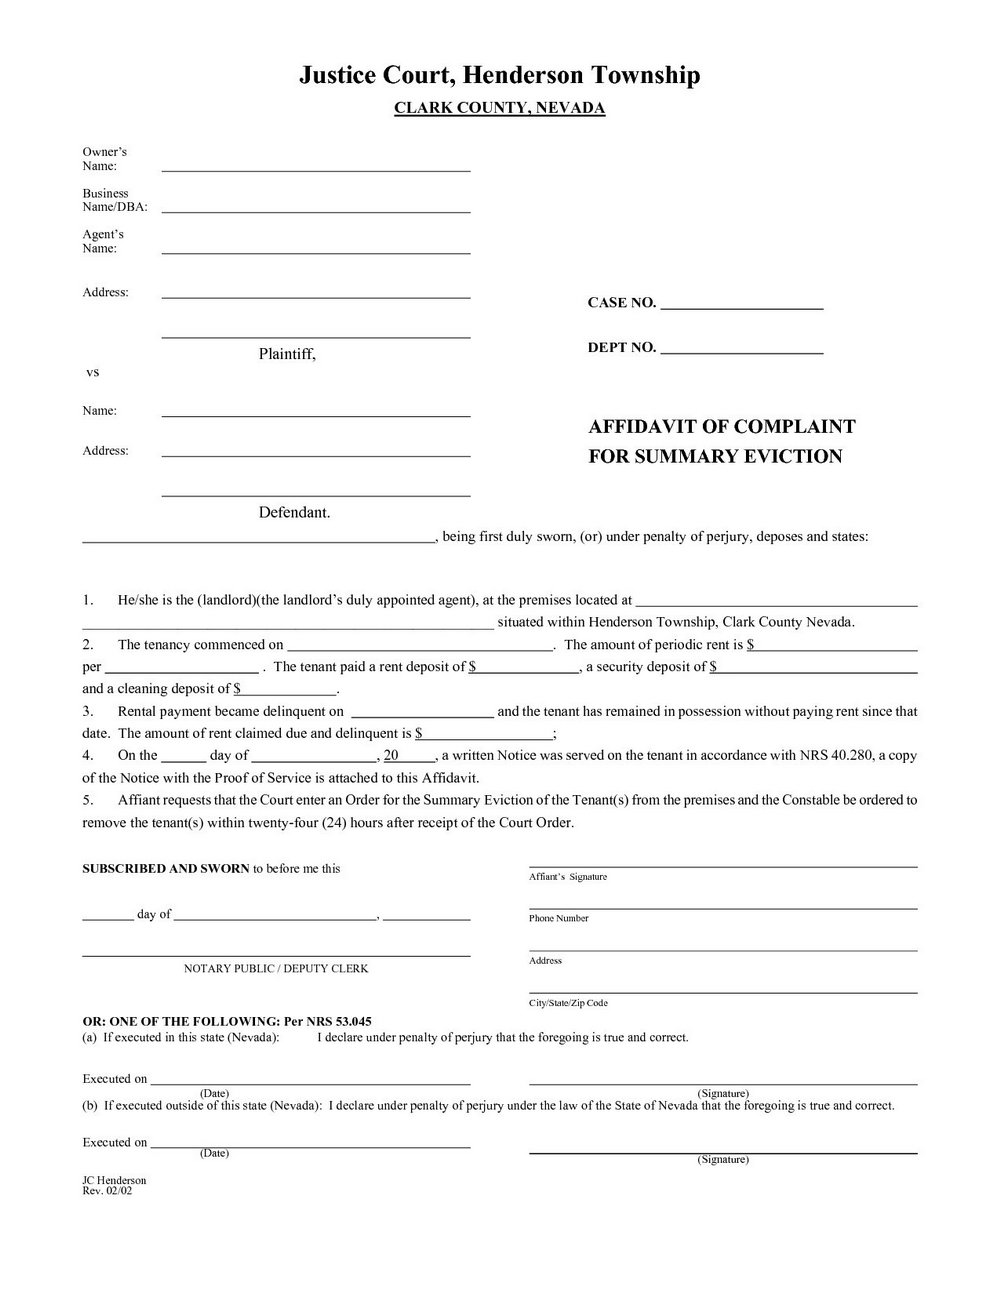 Oregon Birth Certificate Form